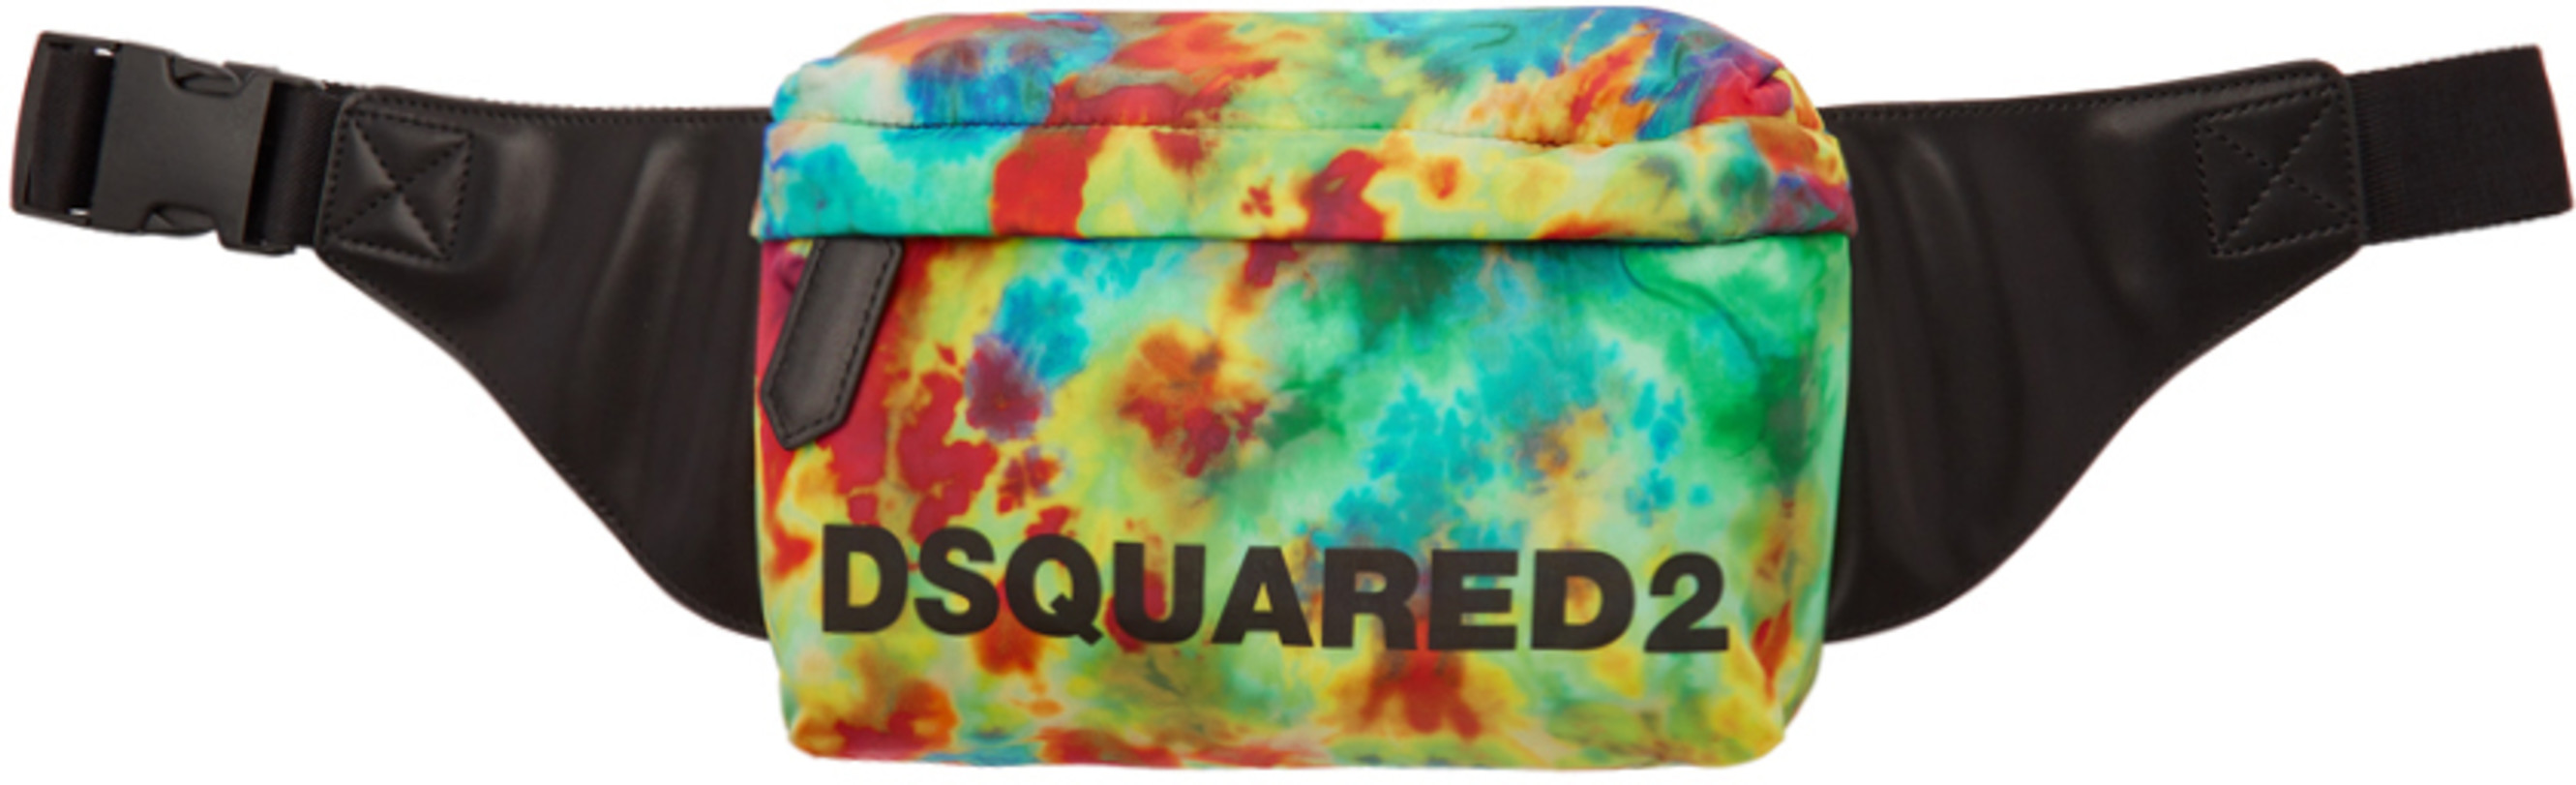 Collection Dsquared2 HommesSsense France Collection Pour Dsquared2 cTF1JlK